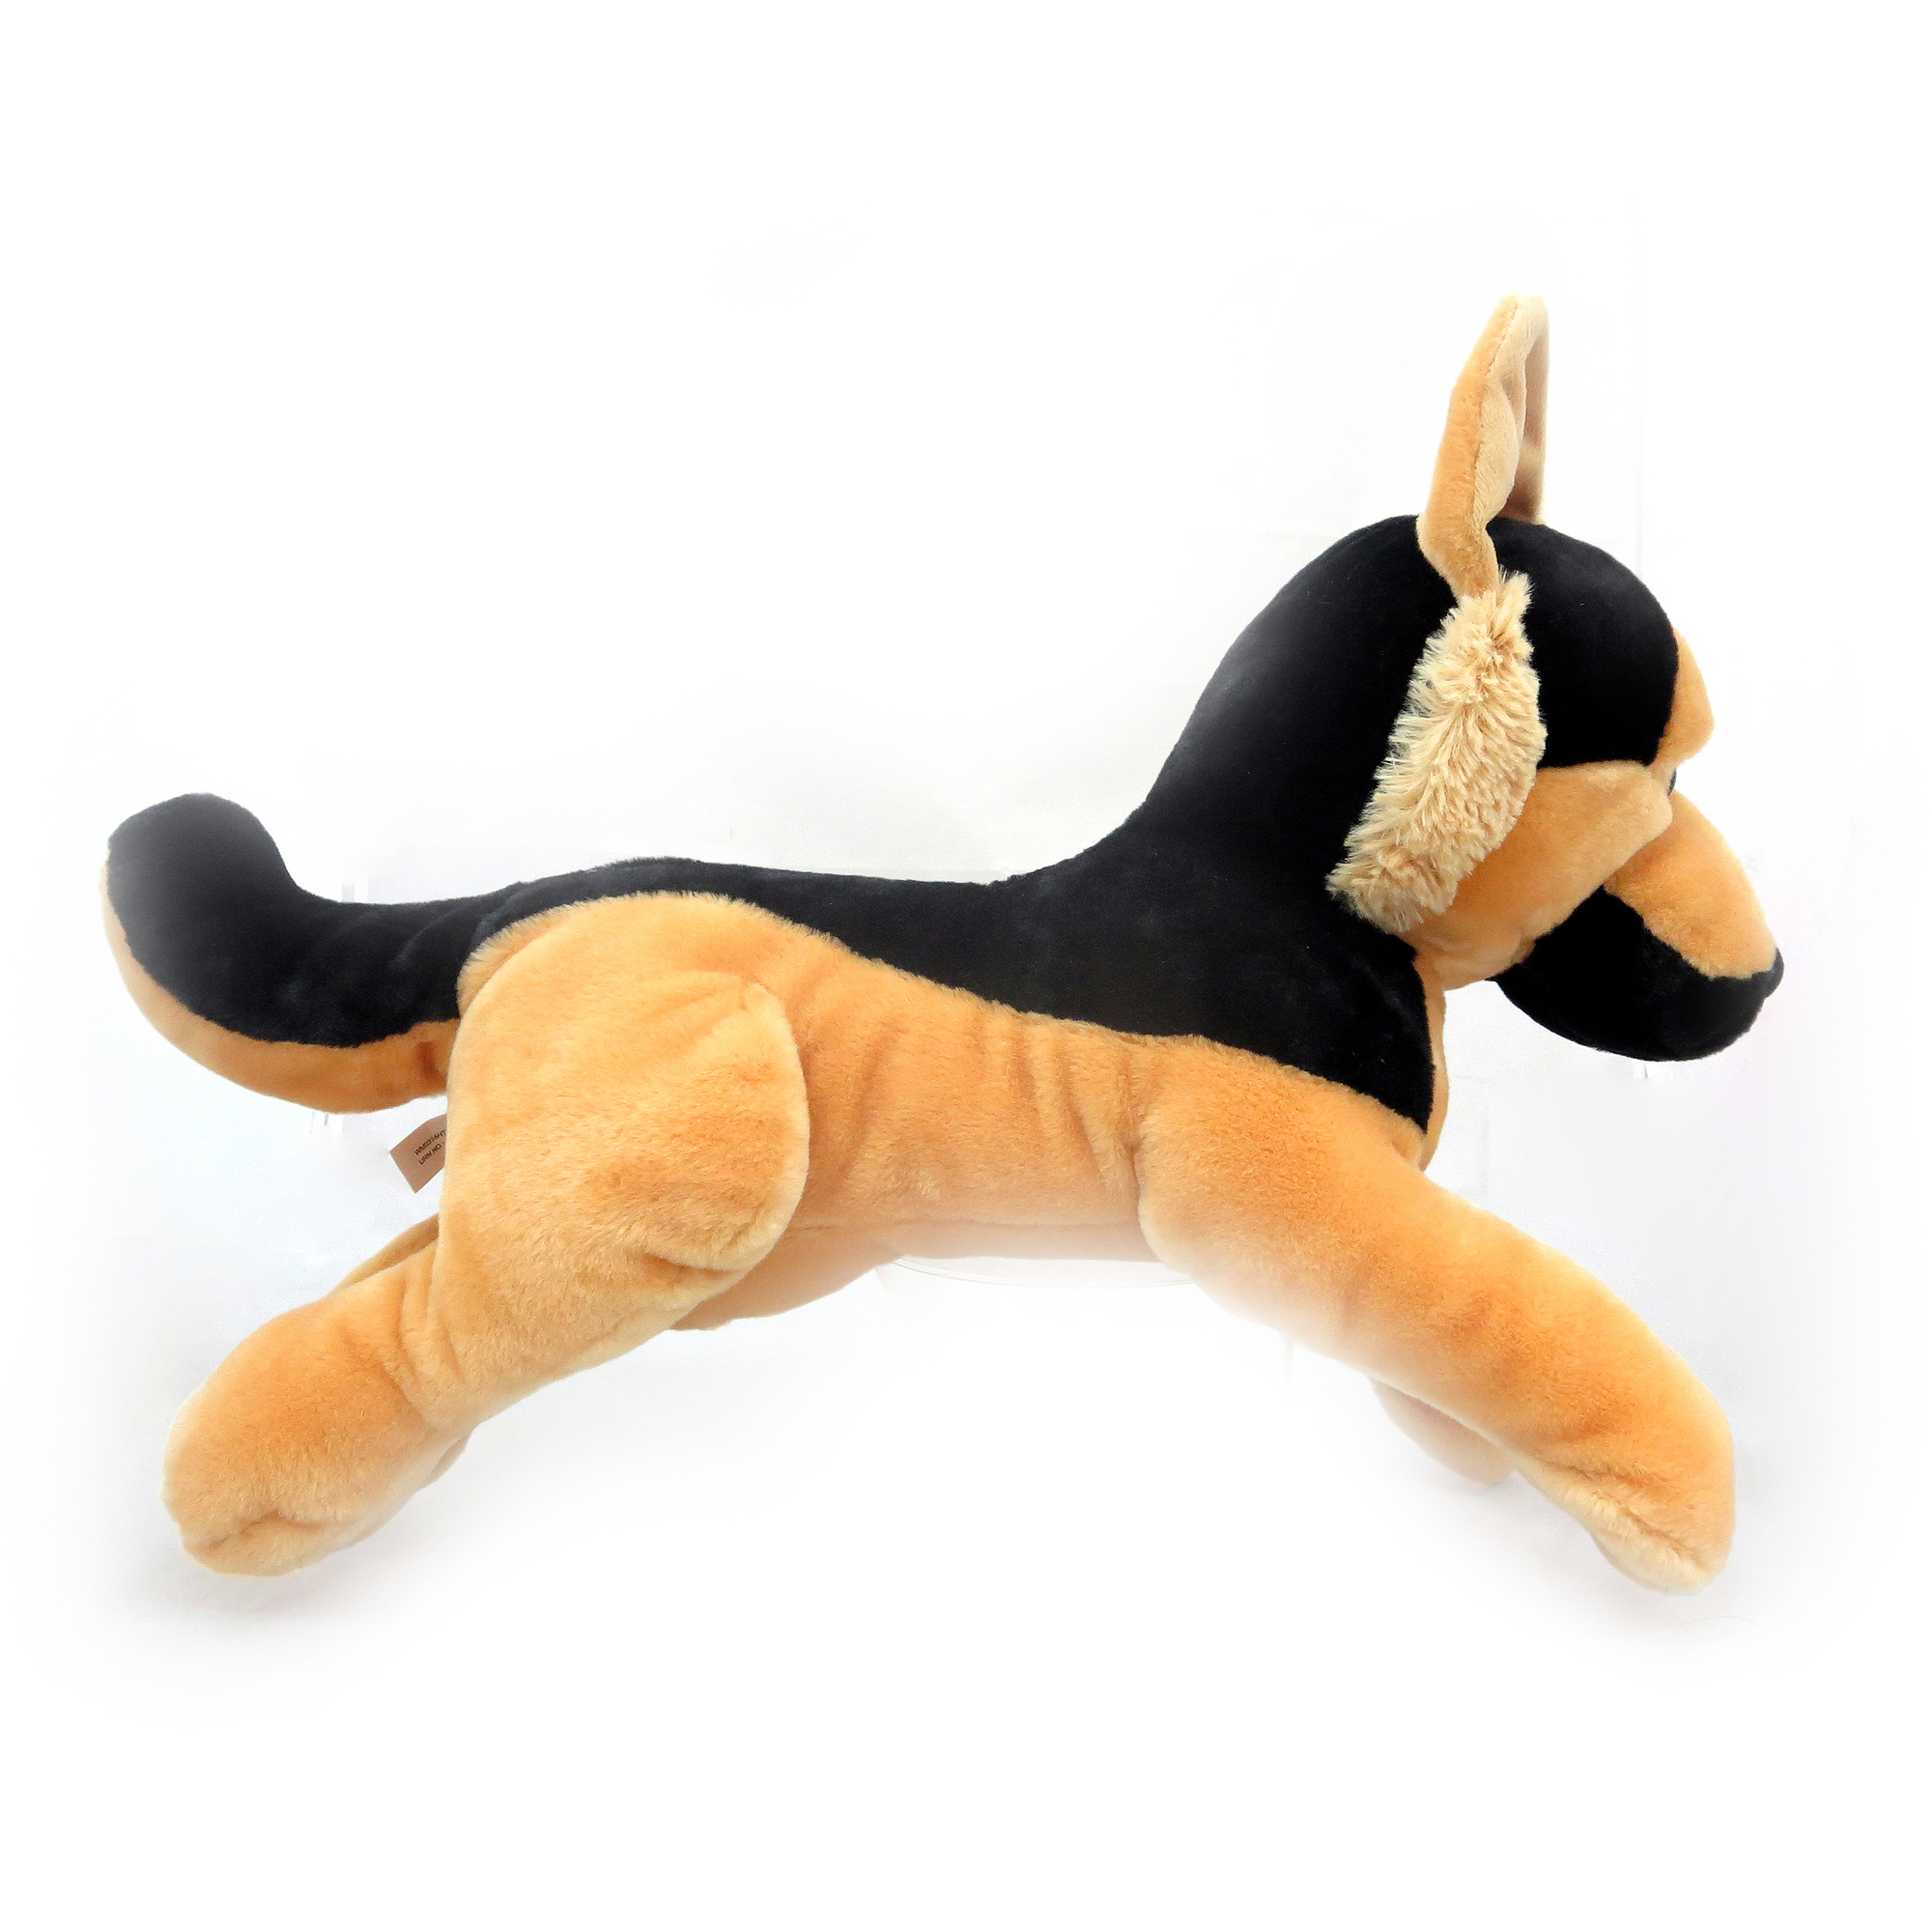 Giant German Shepherd Plush Stuffed Animal Www Topsimages Com